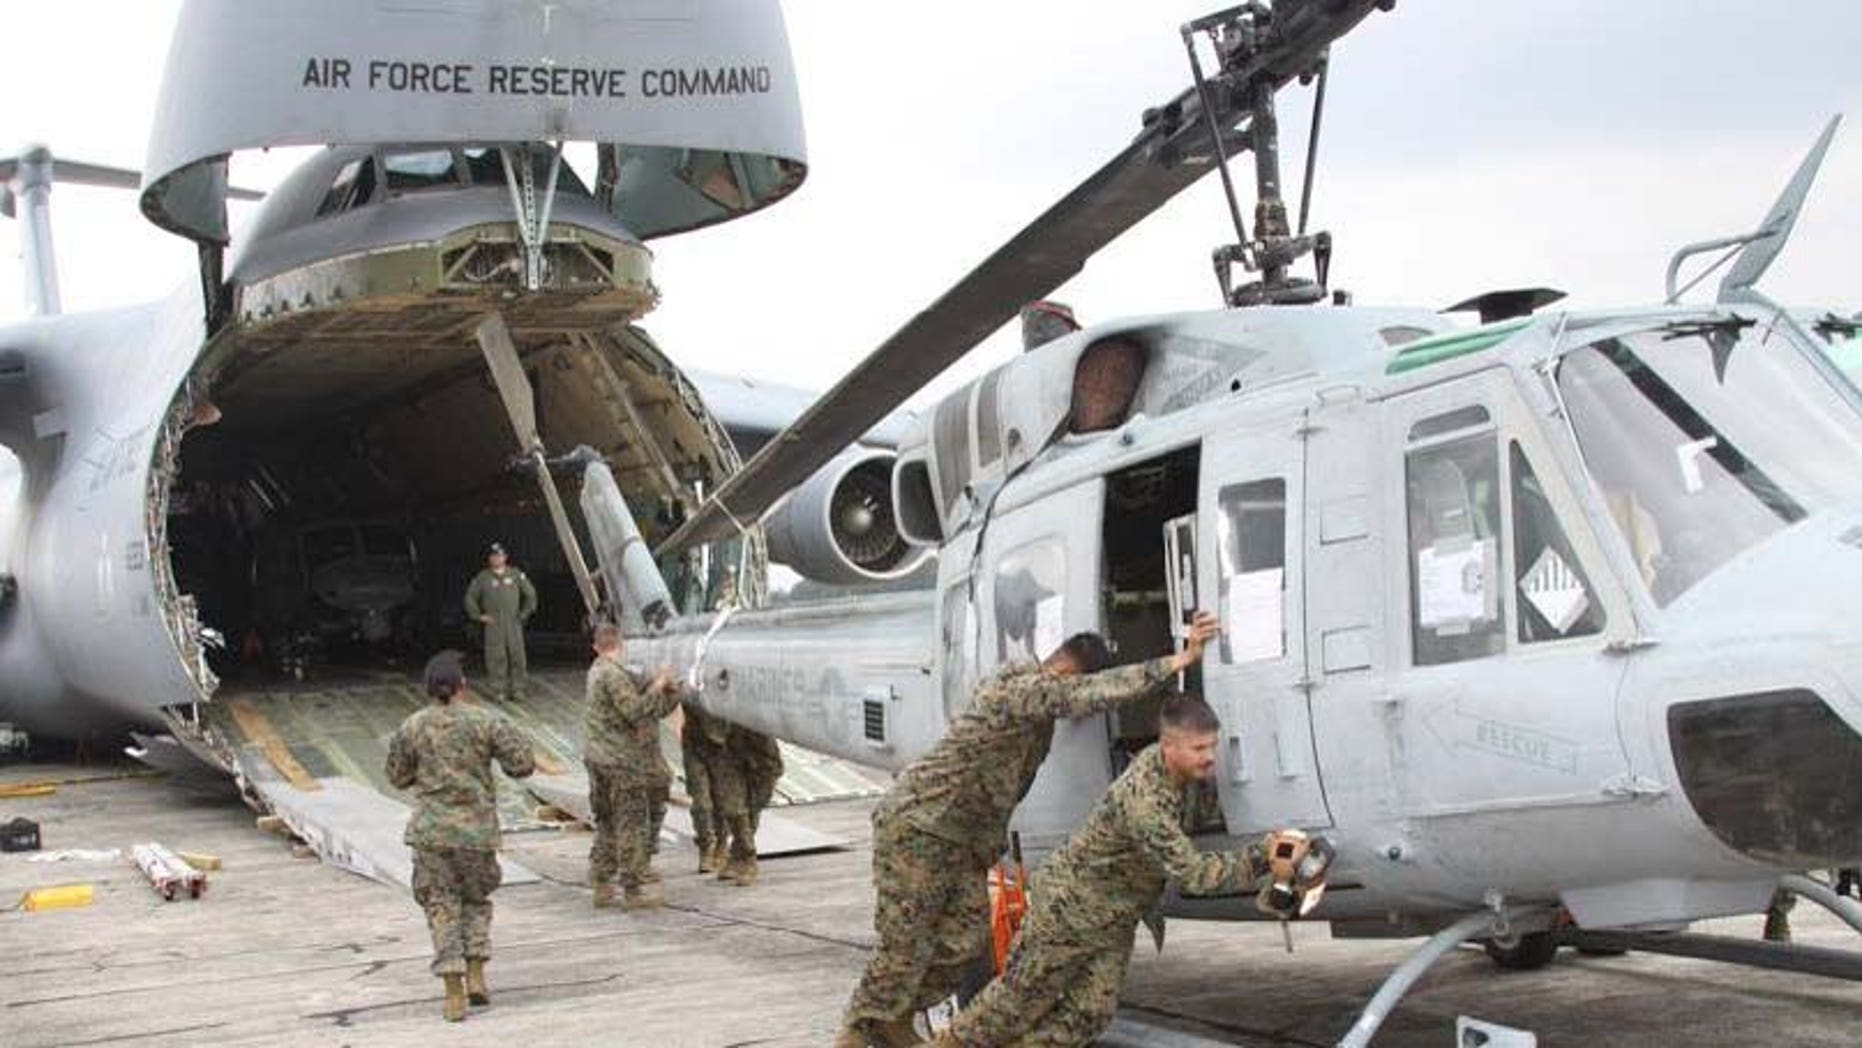 In this image released by the U.S. Marine Corps on Wednesday Aug. 29, 2012,  Marines from Marine Light Attack Helicopter Squadron 467 (HMLA-467) unload a UH-1N Huey helicopter in Guatemala City, Aug. 11, 2012.  A team of 200 U.S. Marines and four UH-1N Huey helicopters has begun patrolling Guatemala's western coast this week in what a military spokesman says is an unprecedented operation, code named Operation Martillo,  to beat drug traffickers in the Central America region. (AP Photo/U.S. Marine Corps)